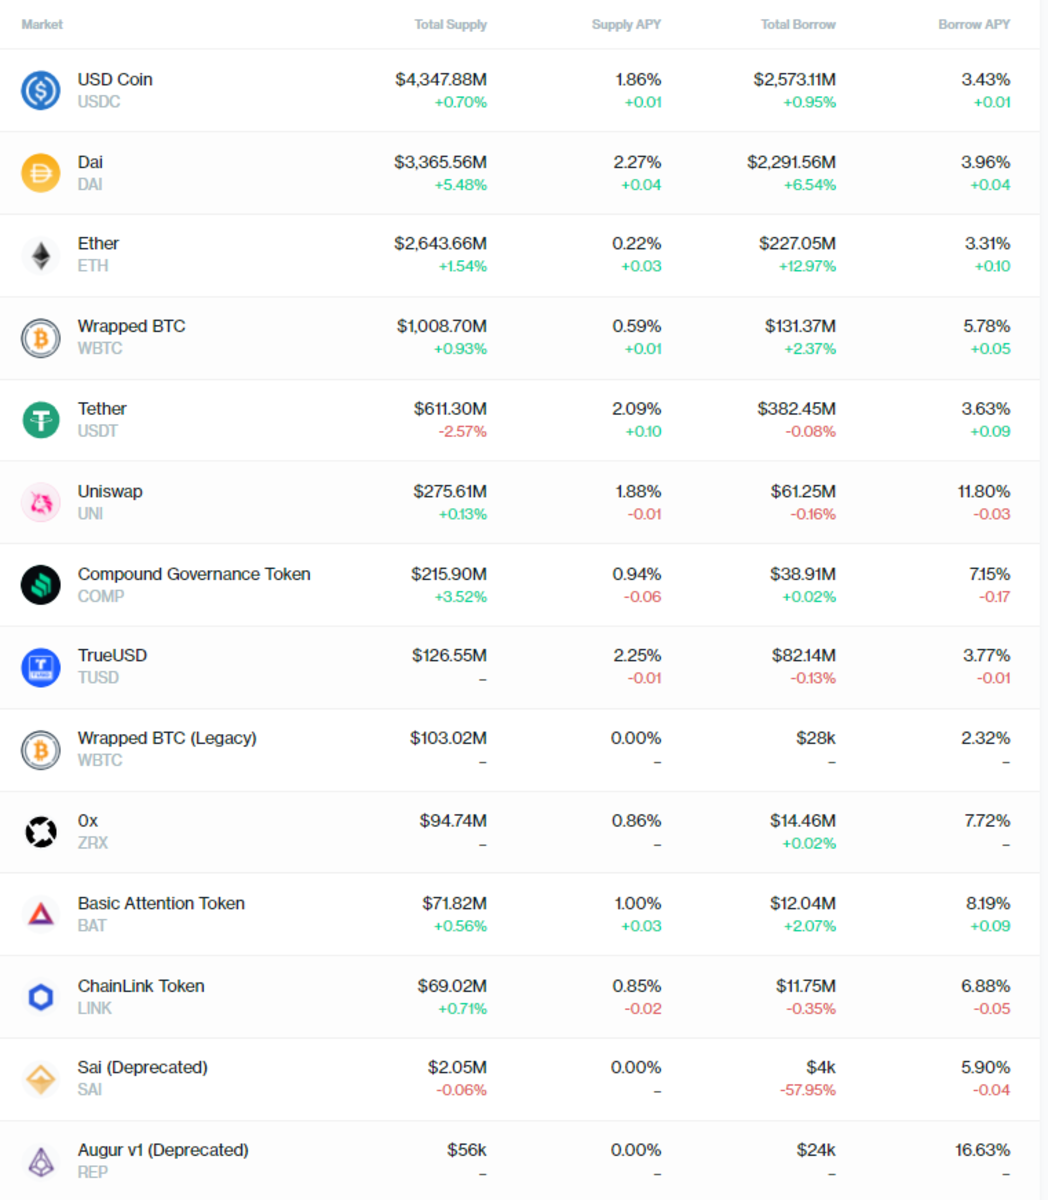 Some of the crypto assets supported by Compound